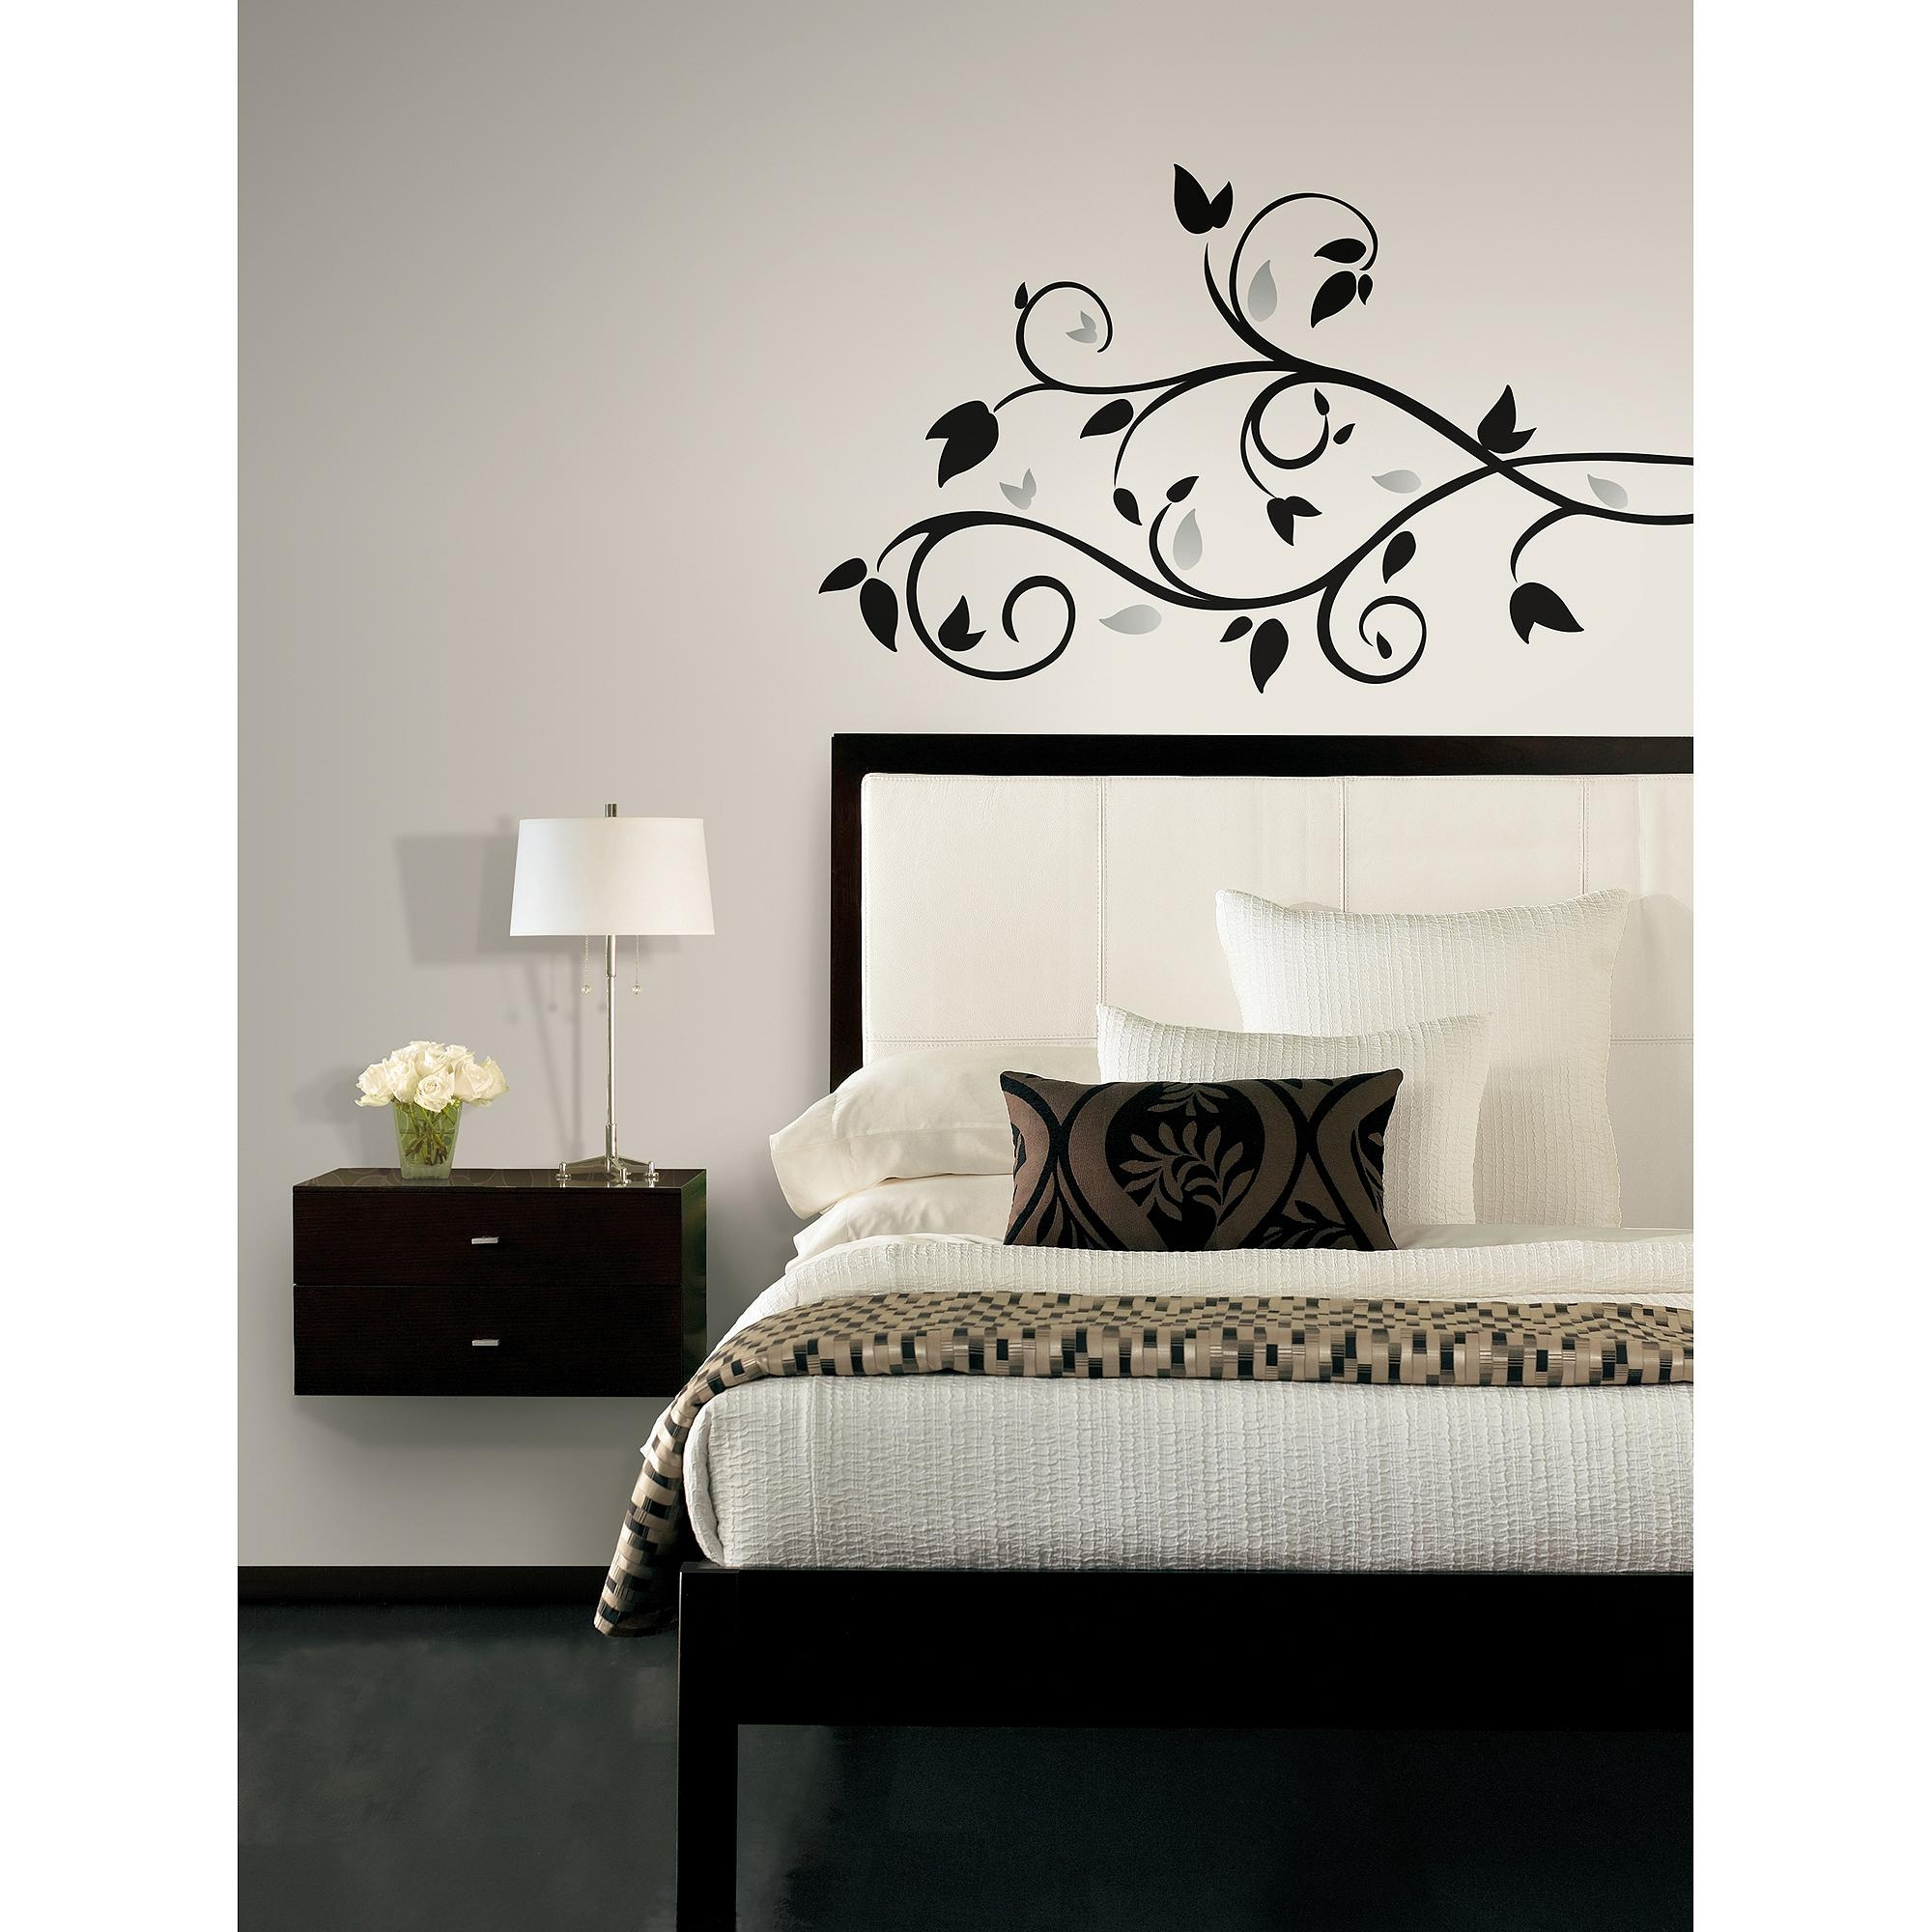 Roommates Foil Tree Branch Peel And Stick Wall Decal – Walmart Intended For Walmart Wall Stickers (View 2 of 20)